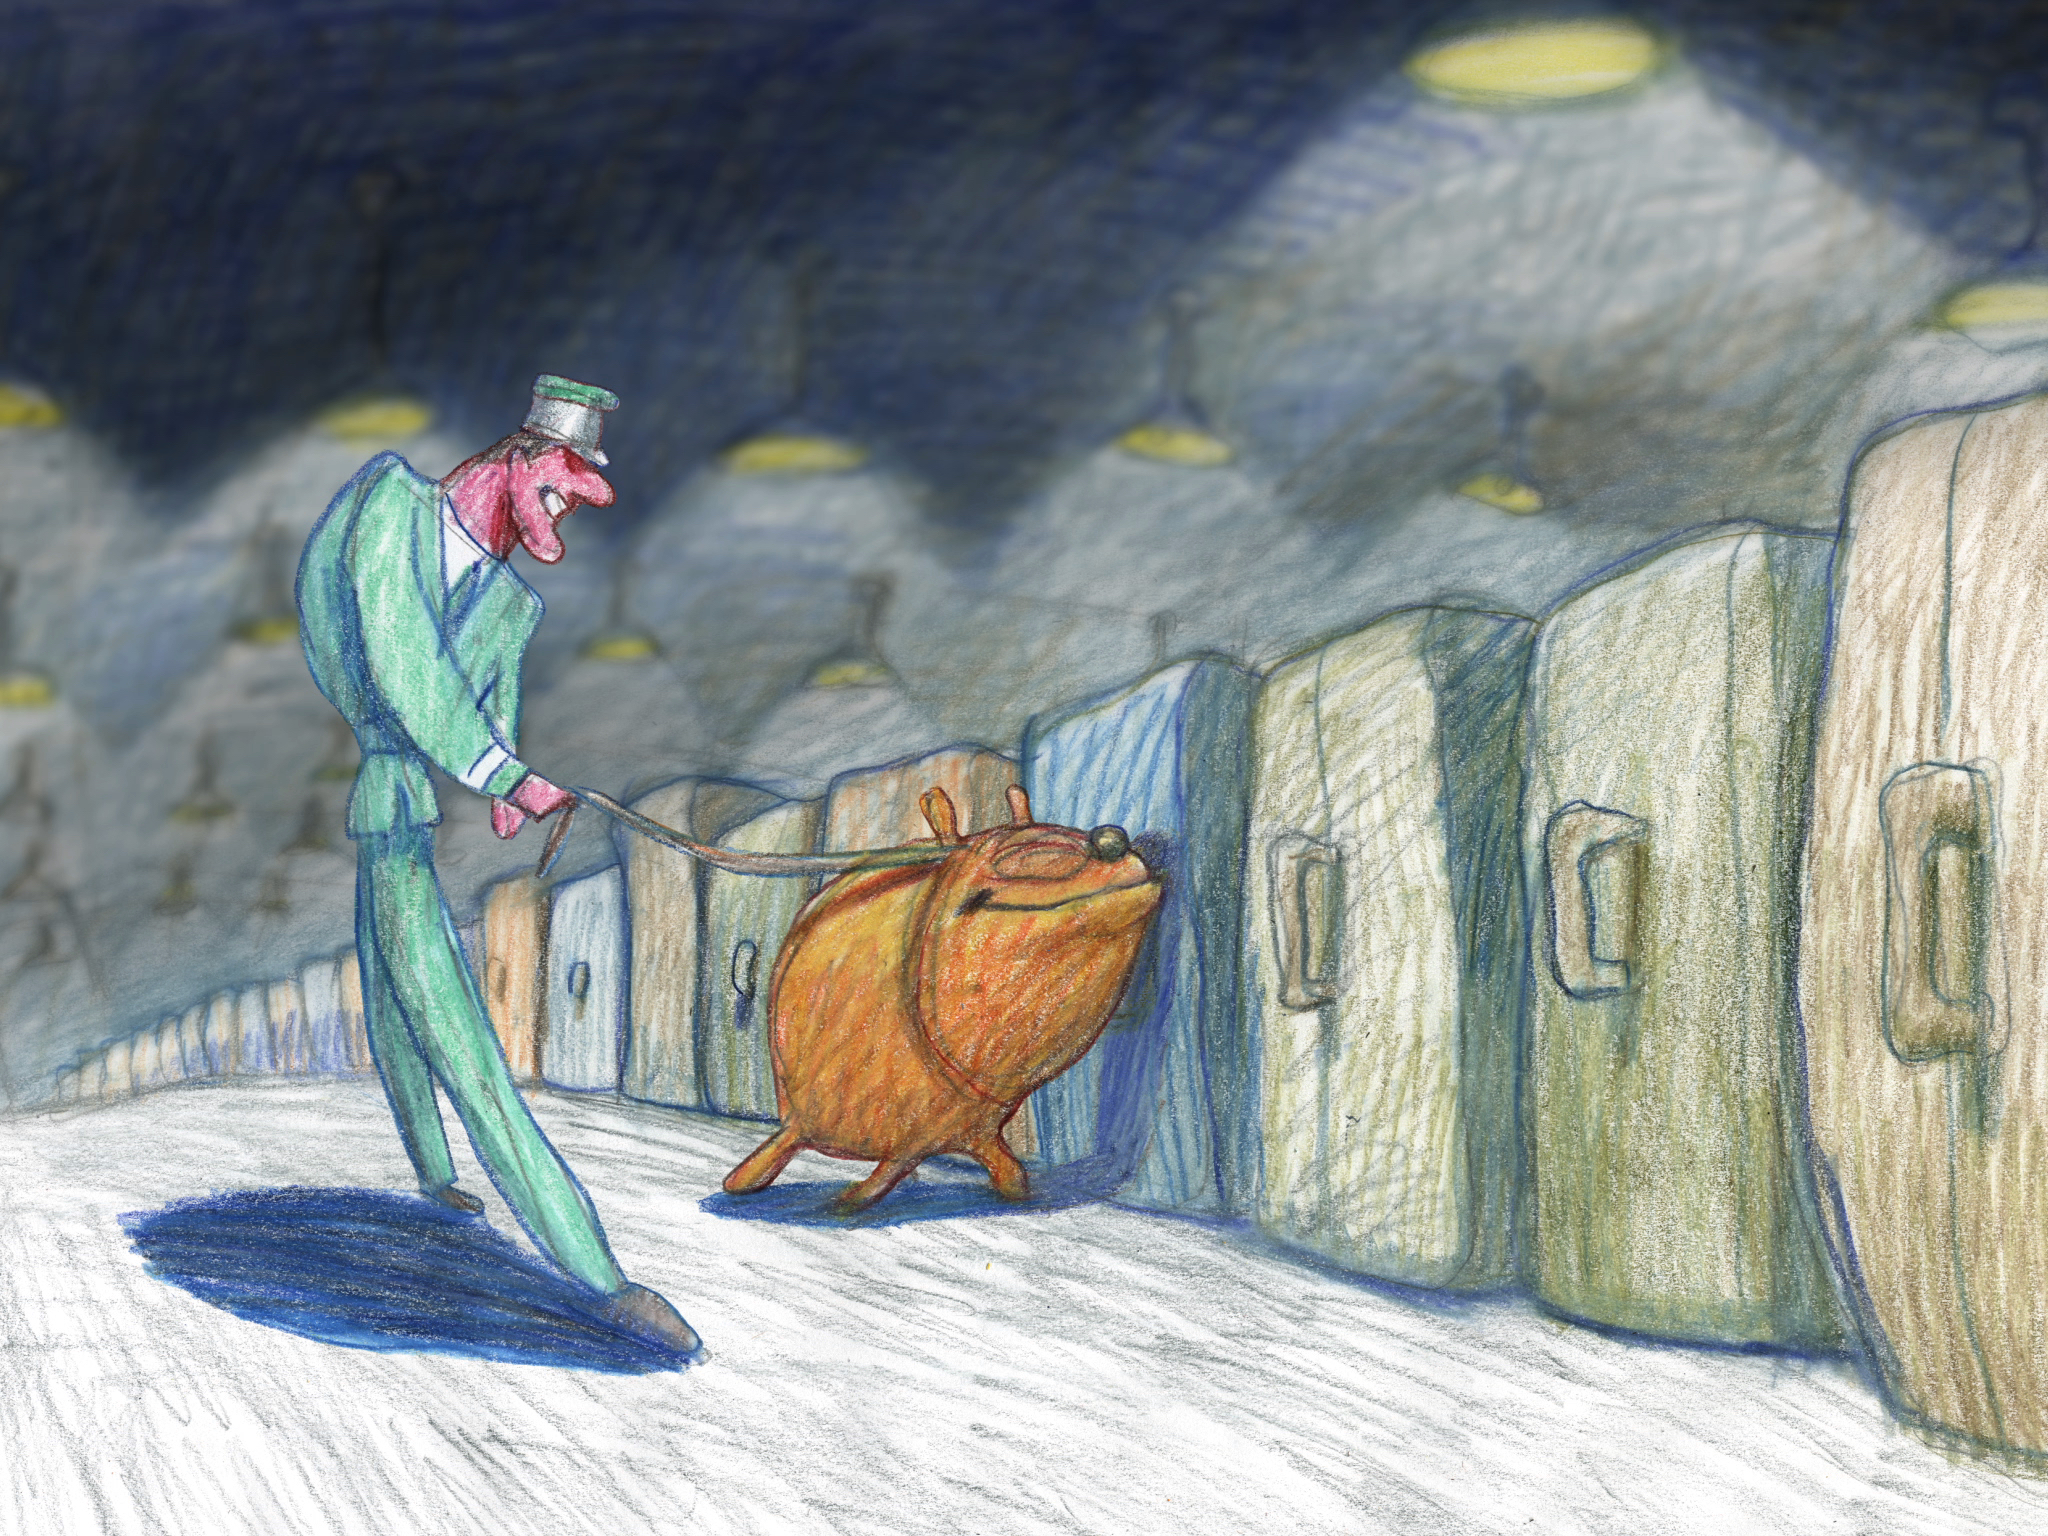 Cop Dog, directed by Bill Plypton